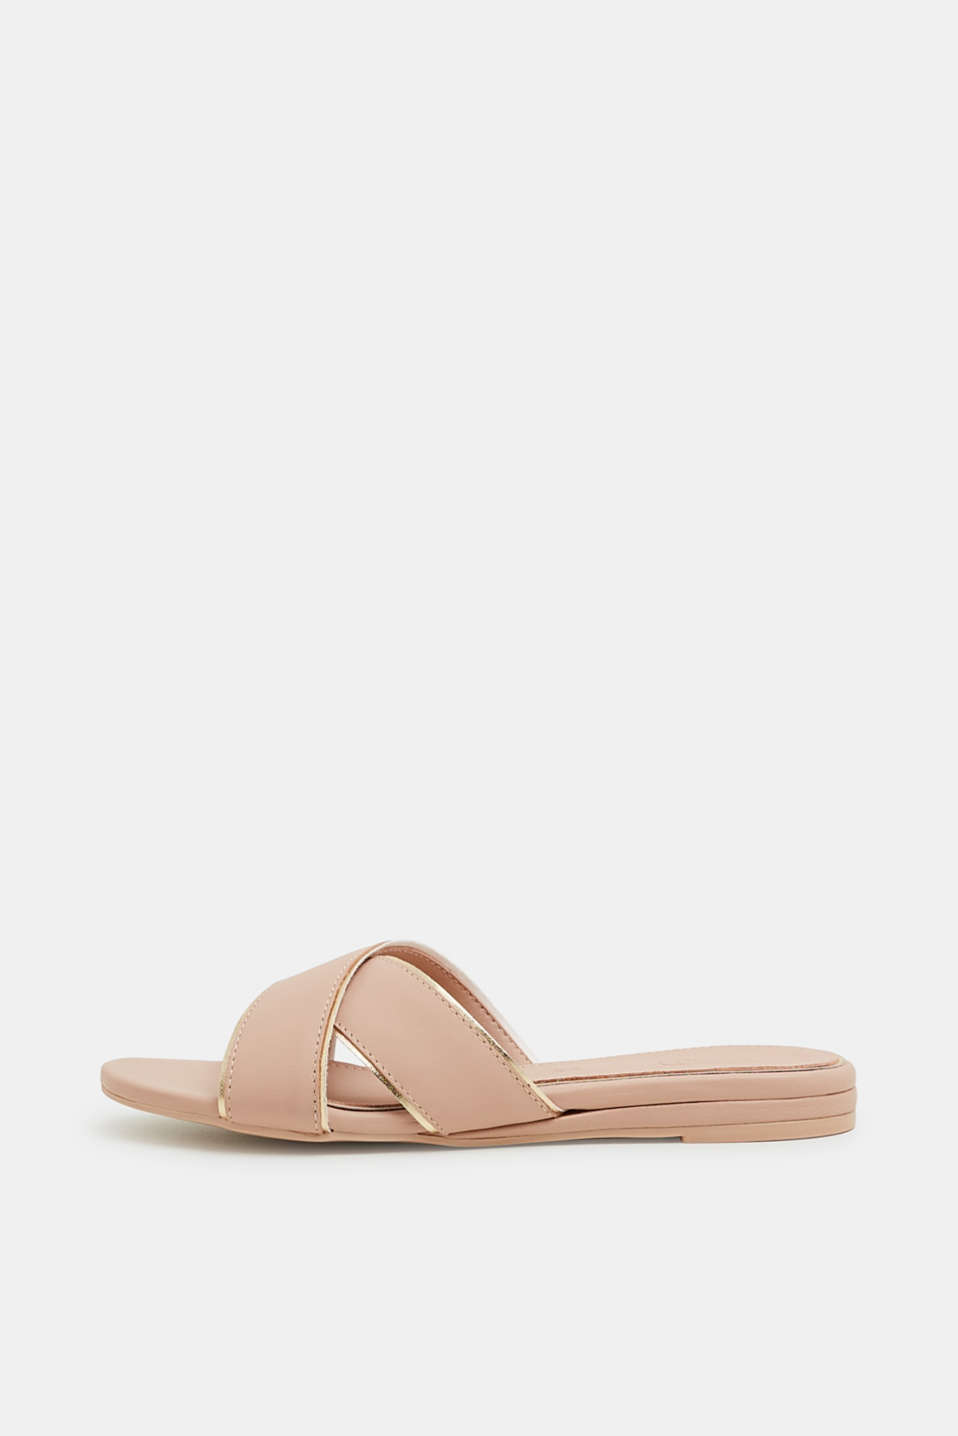 Esprit - Slip-ons with metallic piping, made of leather